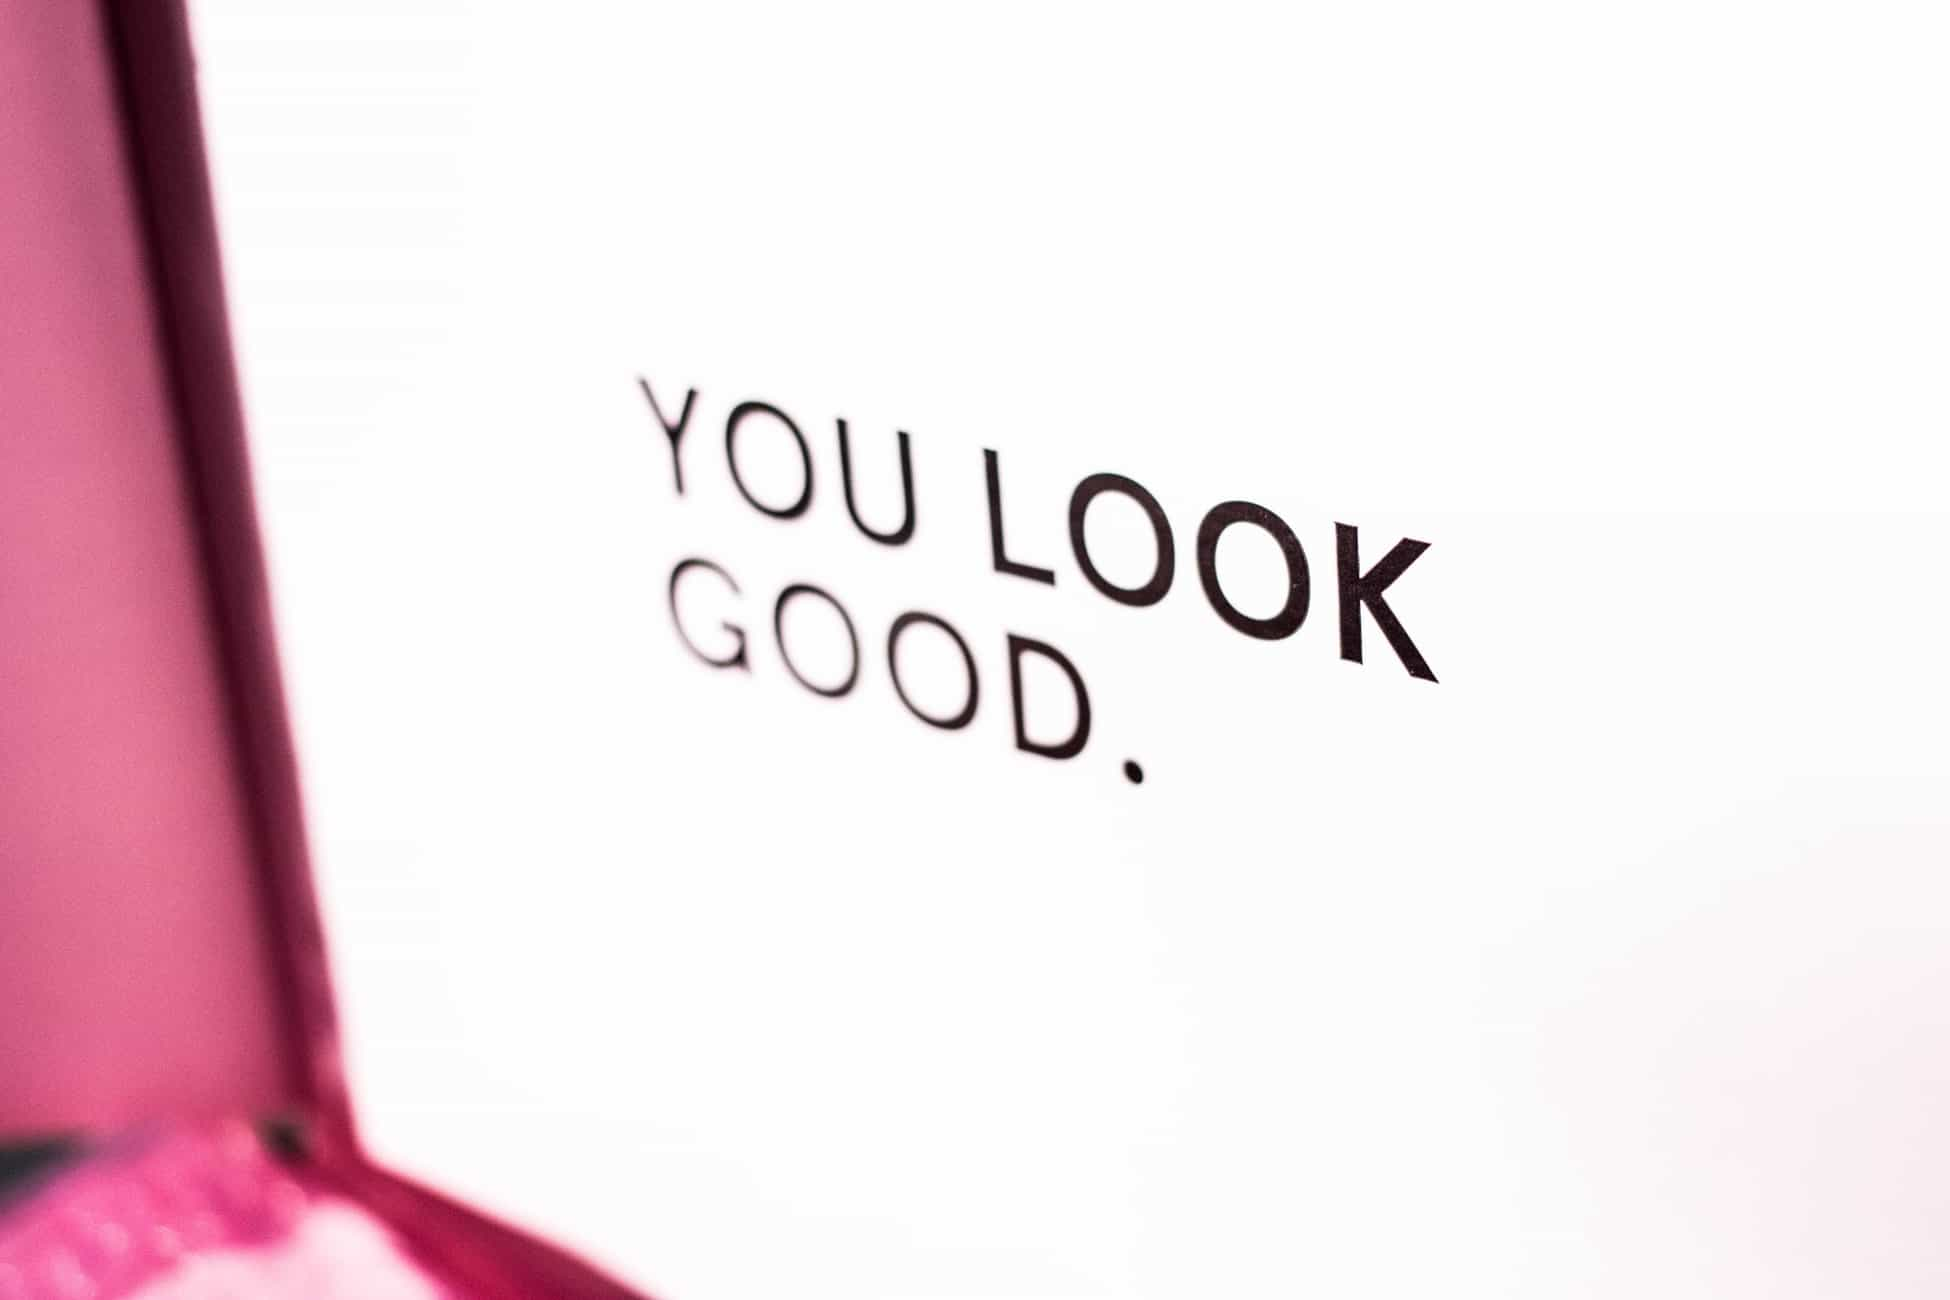 Computer screen showing the text 'YOU LOOK GOOD'